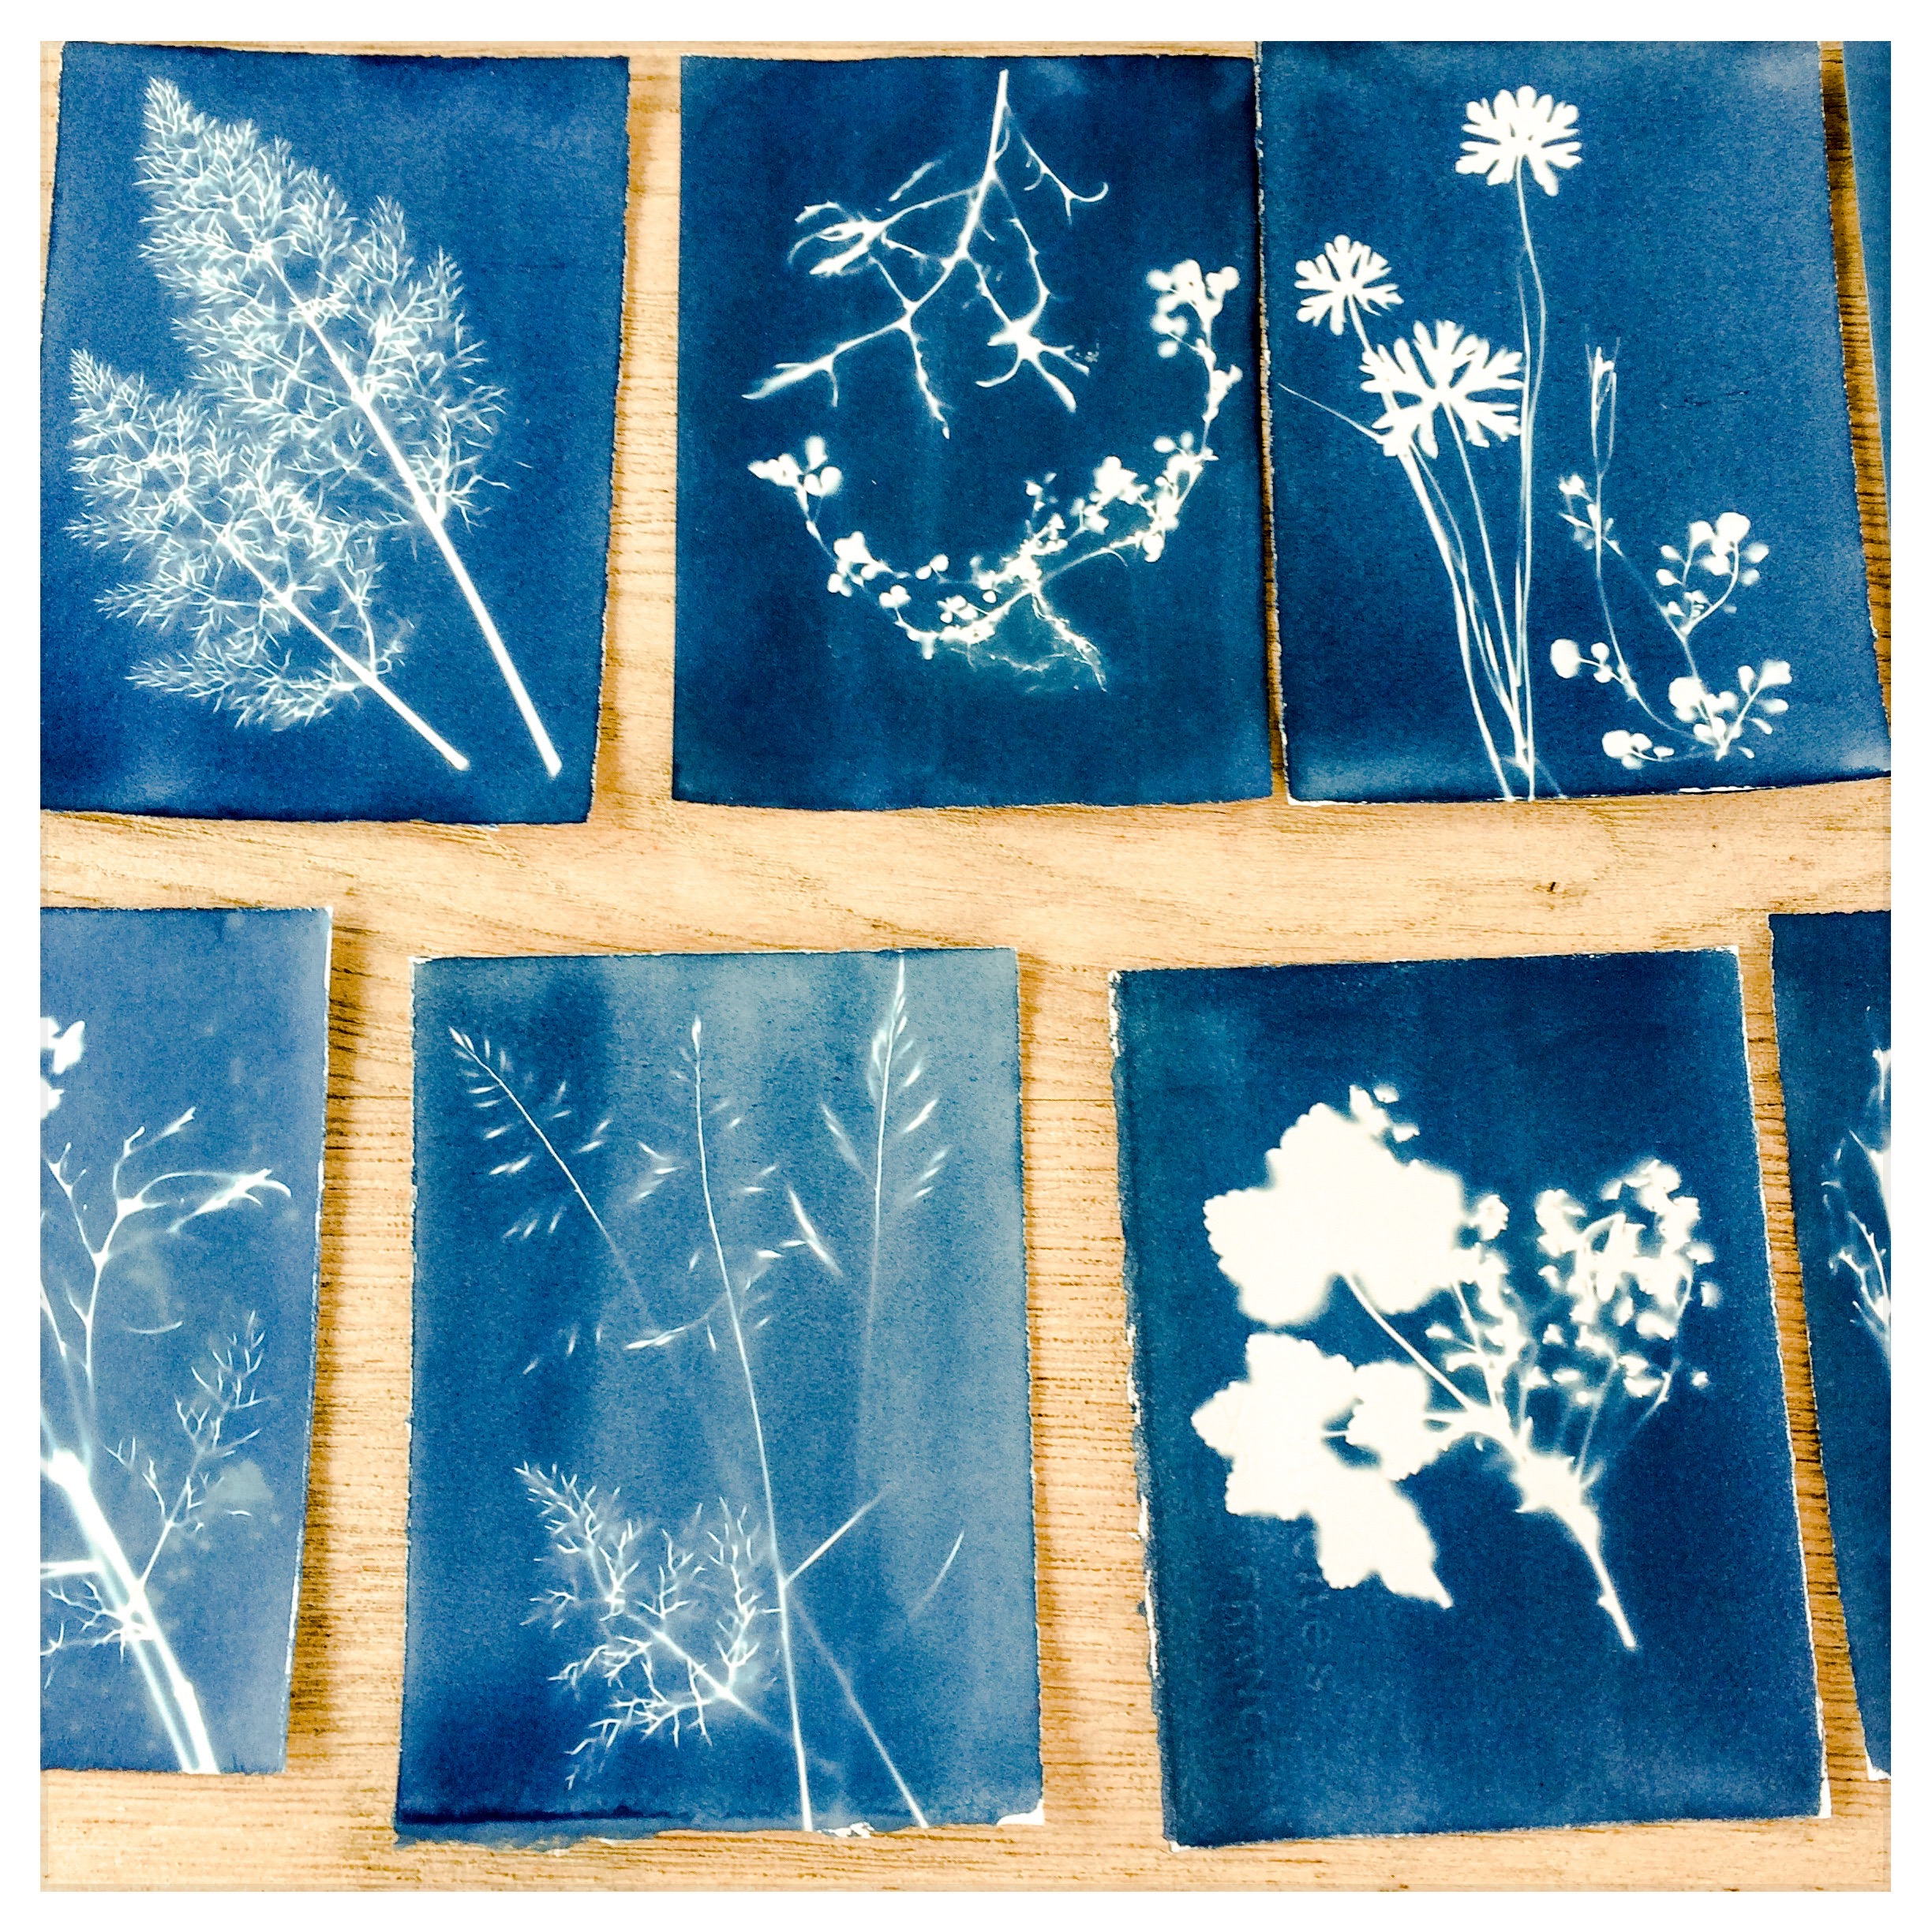 Students initial test prints, checking exposure times.